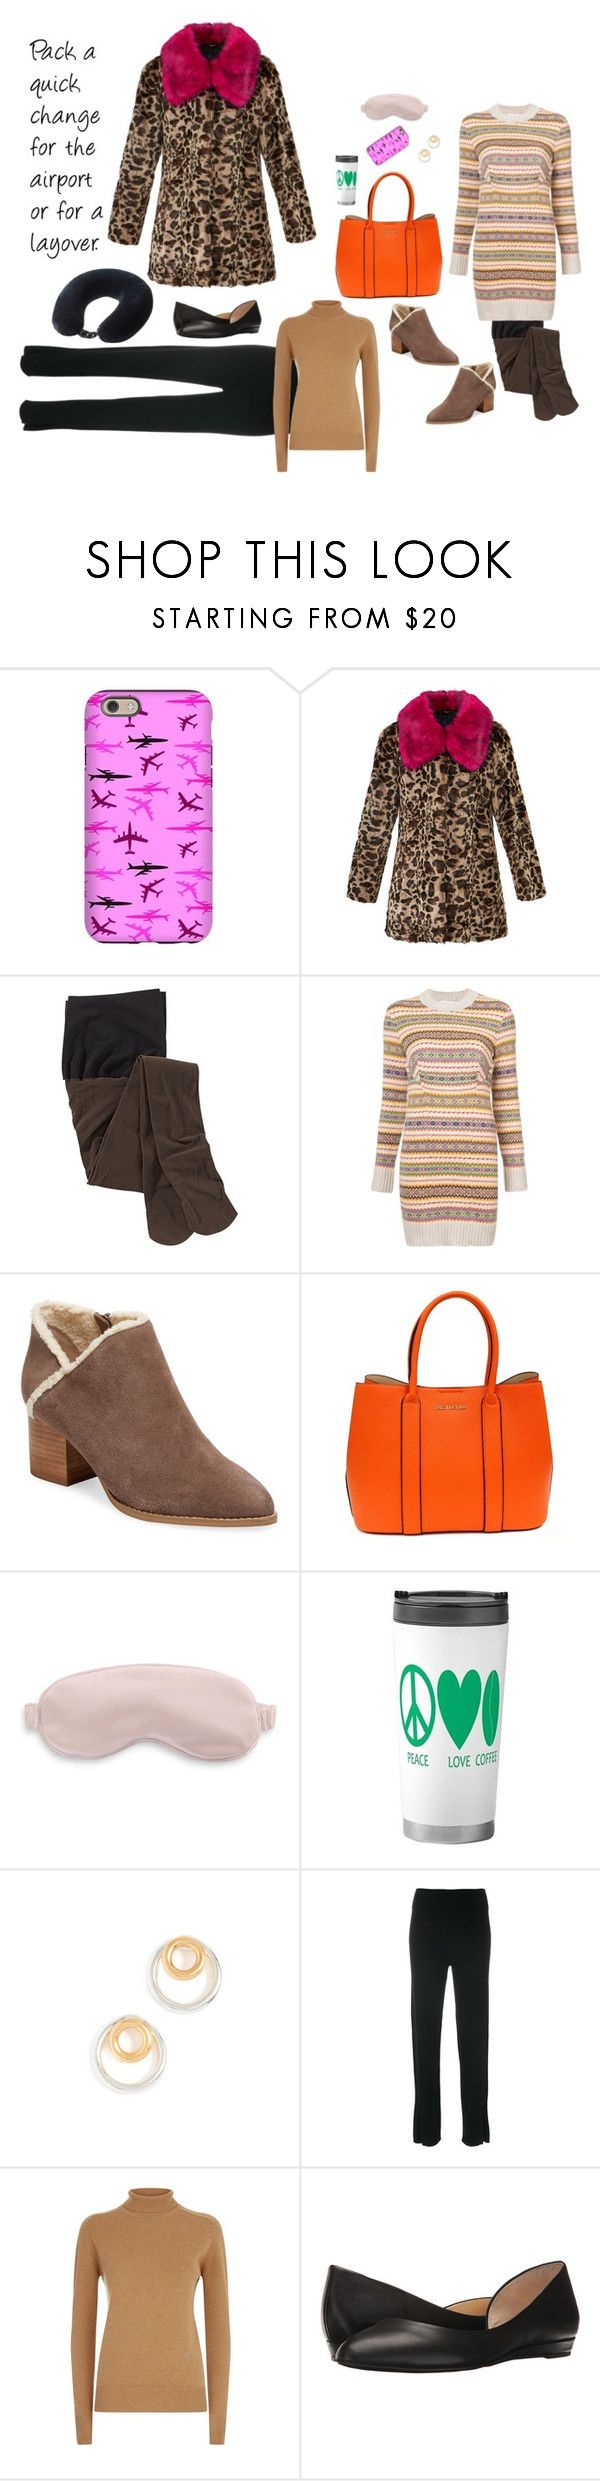 """""""Ready For Flight"""" by canoe-communicationsblog ❤ liked on Polyvore featuring Unreal Fur, STELLA McCARTNEY, Seychelles, Suzy Levian, Slip, Madewell, Cashmere in Love, Victoria Beckham, Jessica Simpson and Lewis N. Clark"""